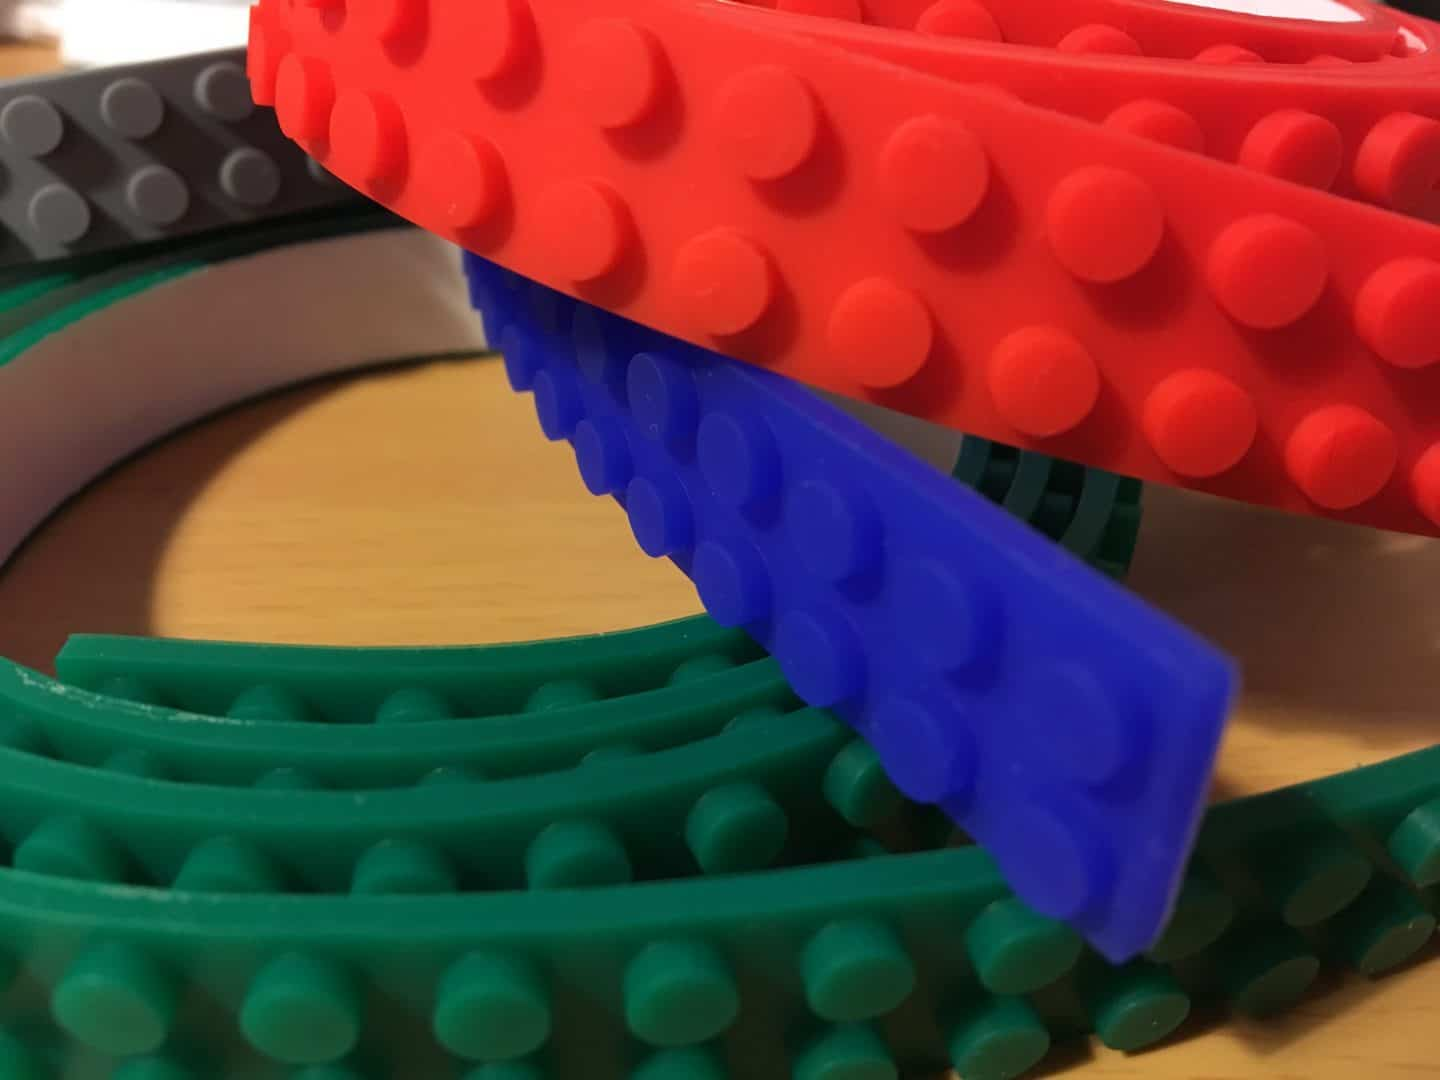 Lego Compatible sticky brick tape in red, blue, green and grey